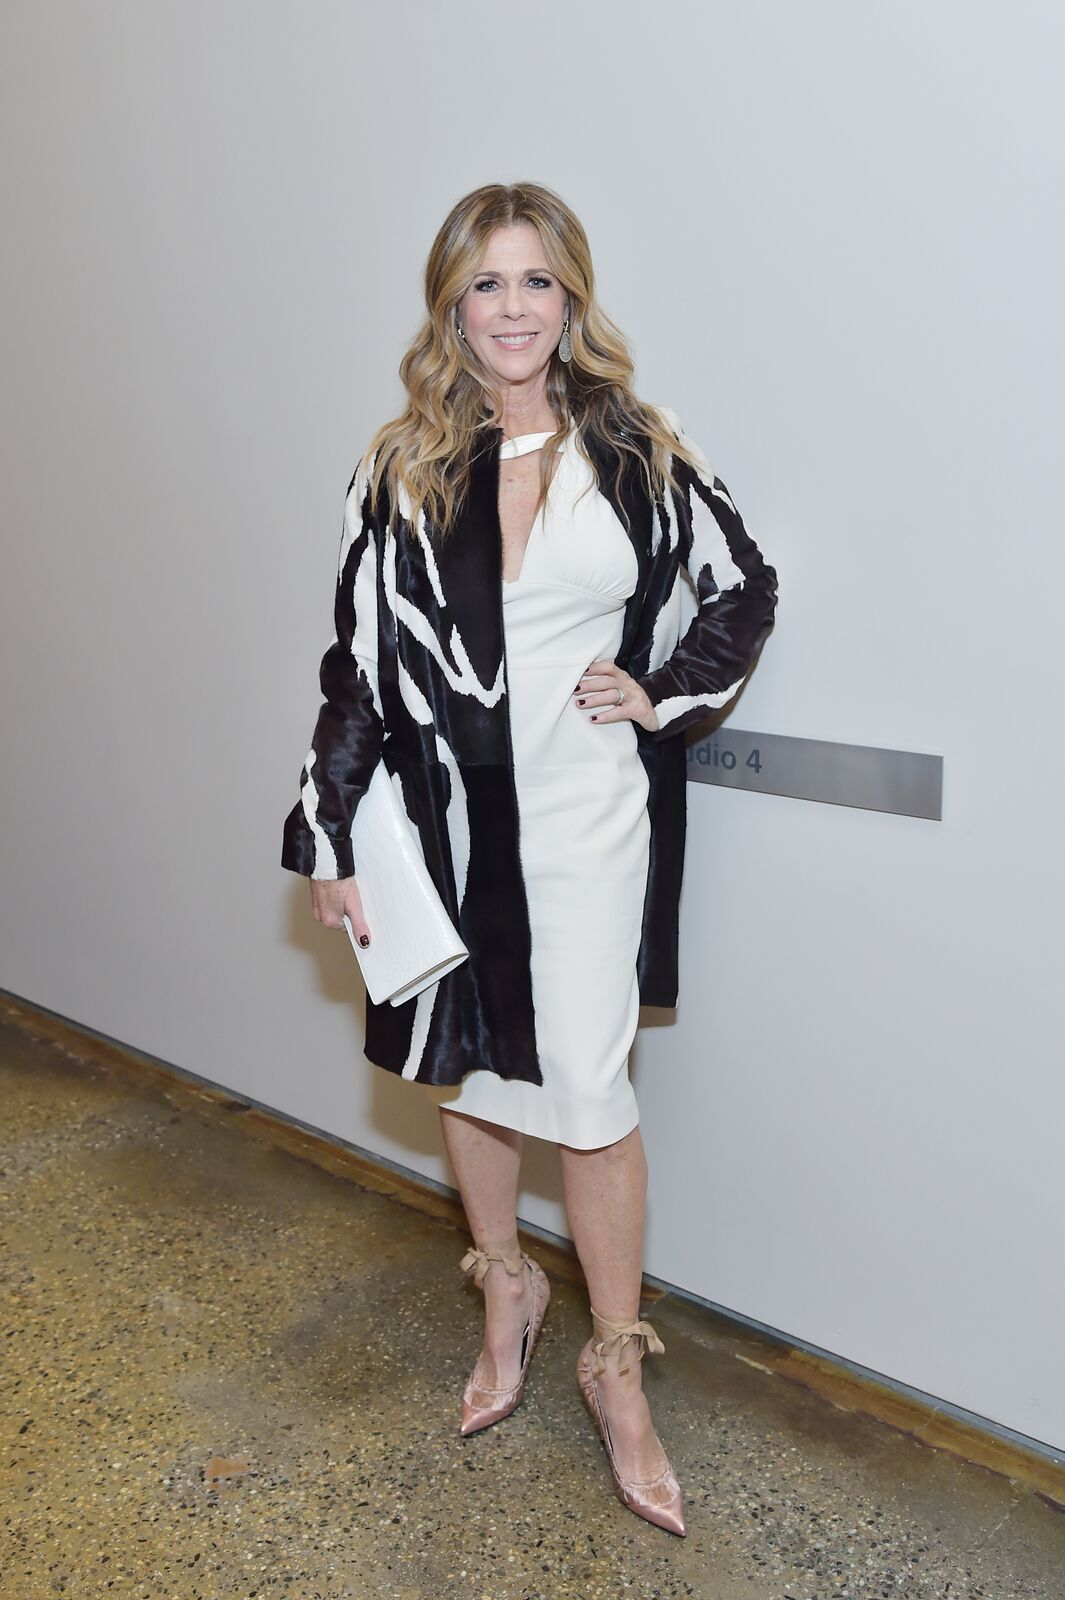 Rita Wilson attends The Hollywood Reporter's Power 100 Women In Entertainment at Milk Studios on December 5, 2018 in Los Angeles, California | Photo: Getty Images